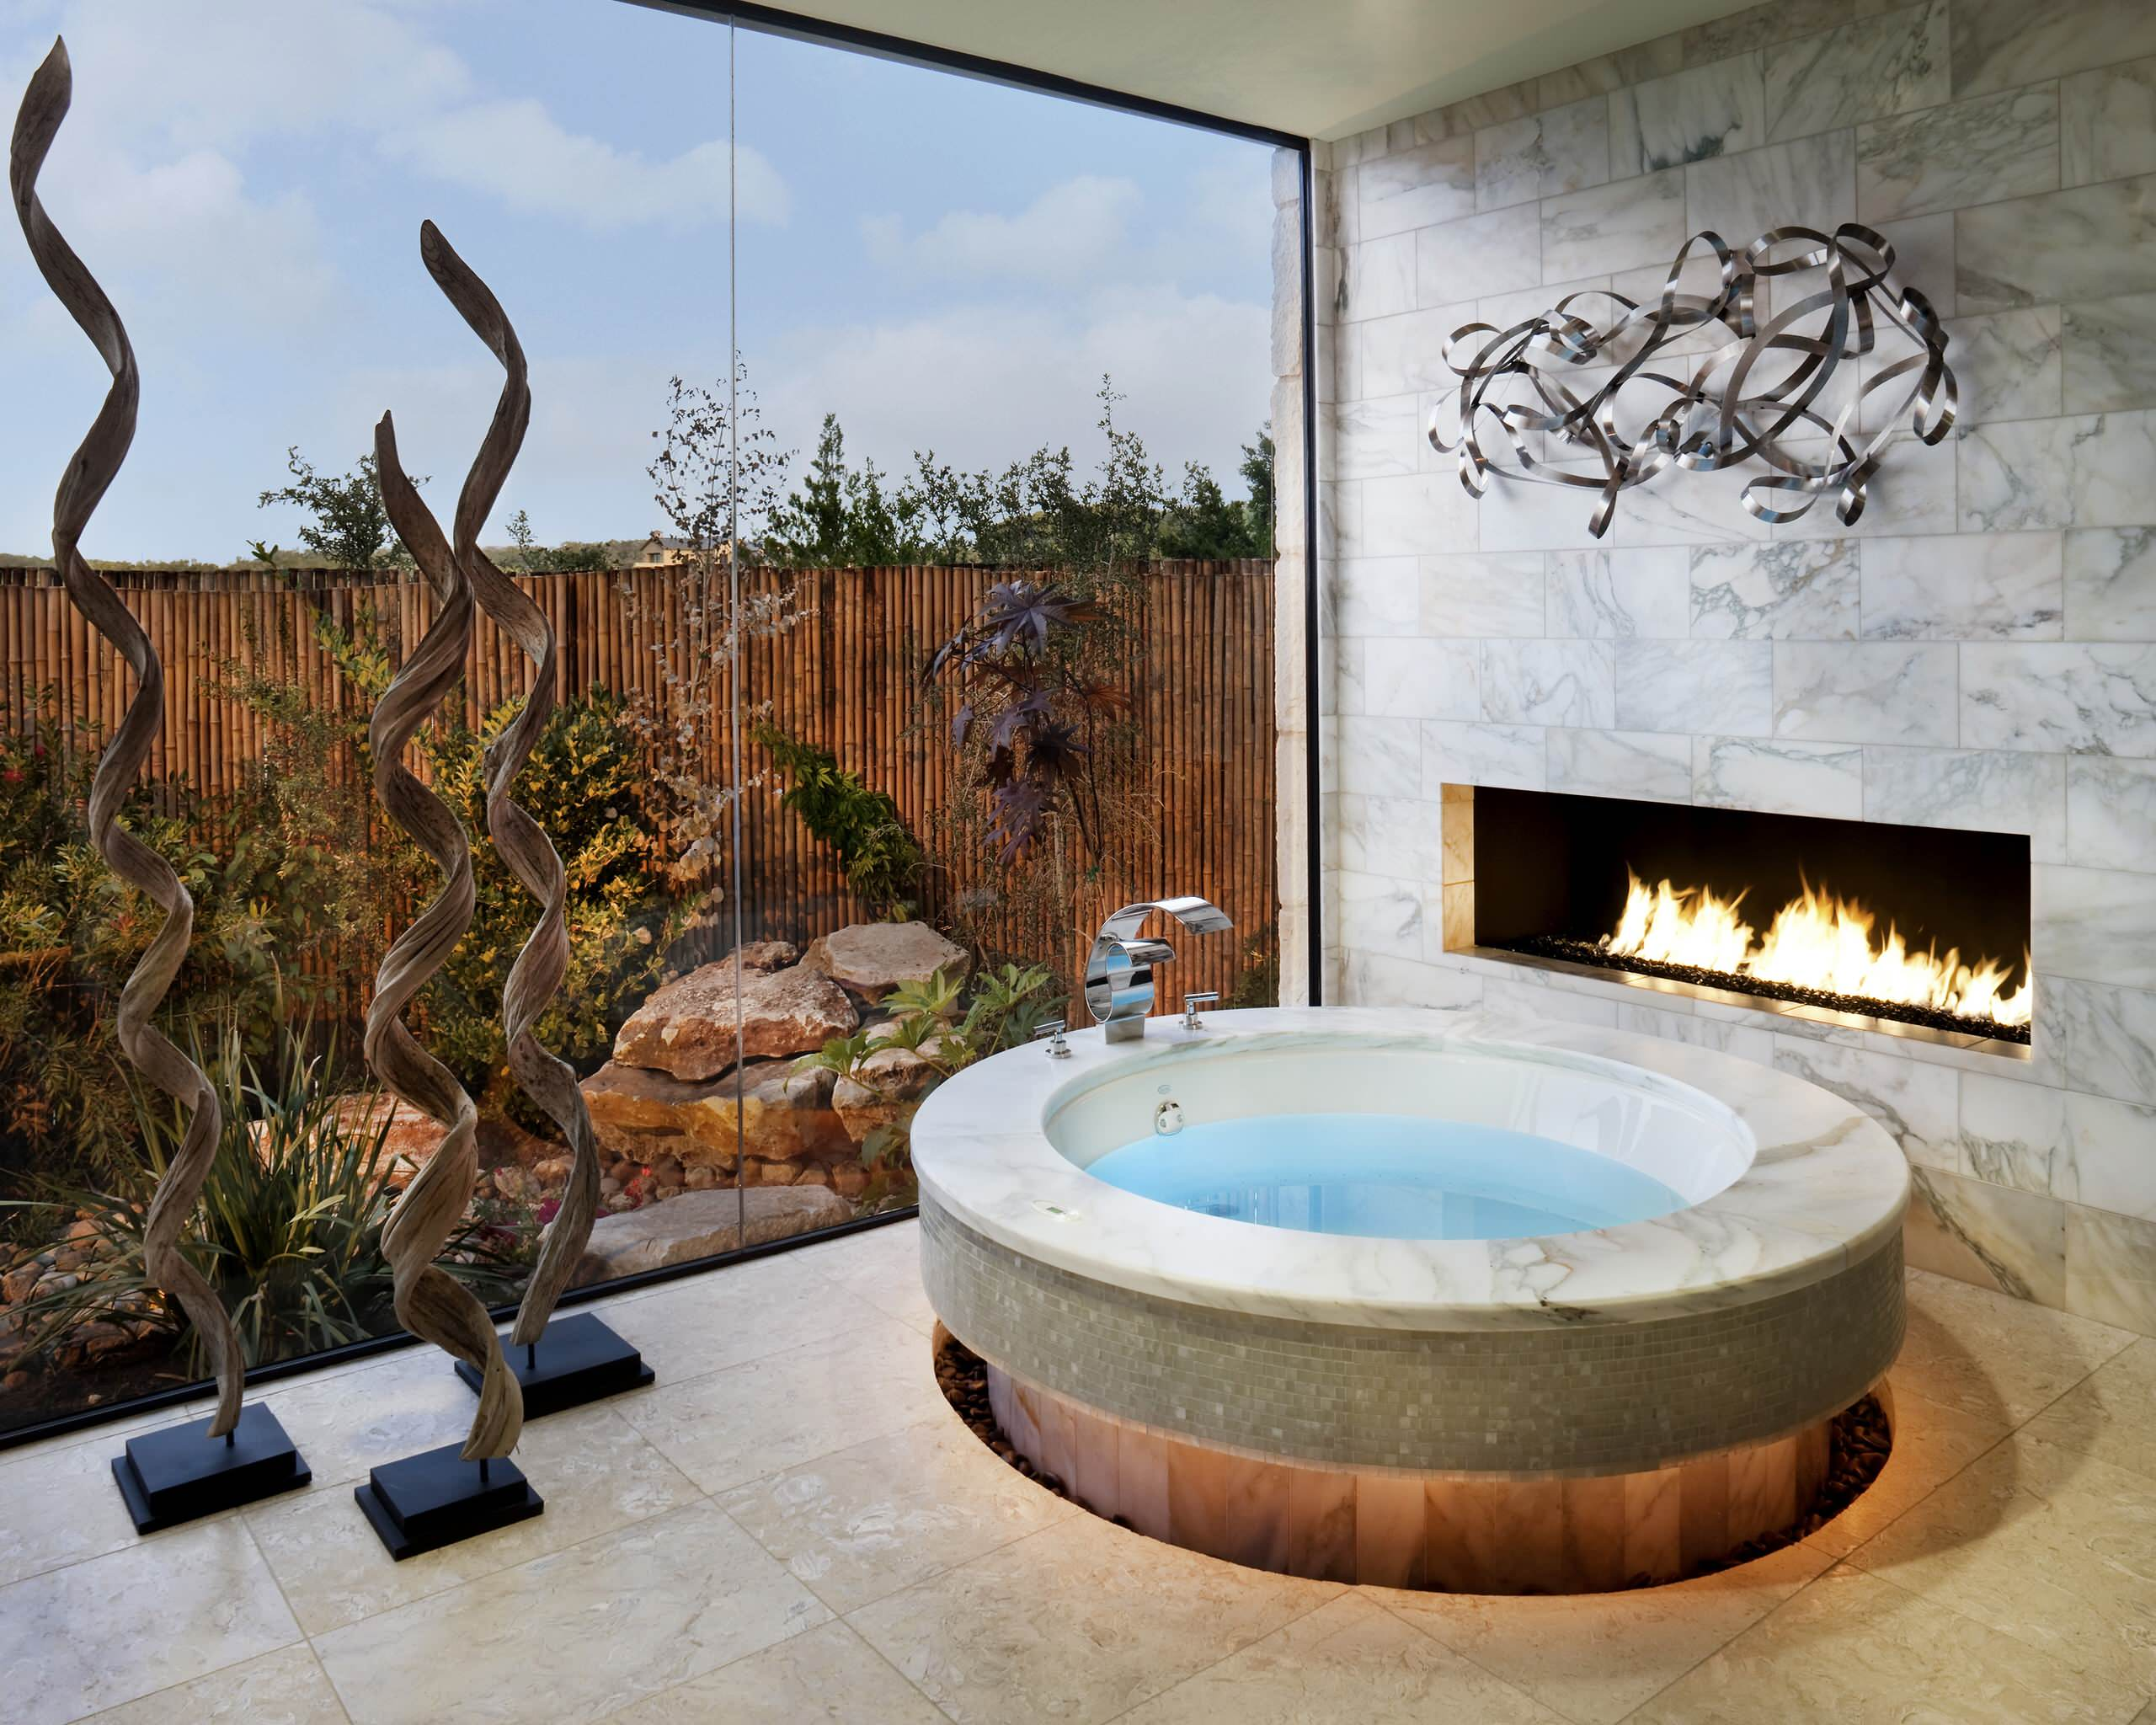 75 Beautiful Bathroom With A Hot Tub Pictures Ideas March 2021 Houzz